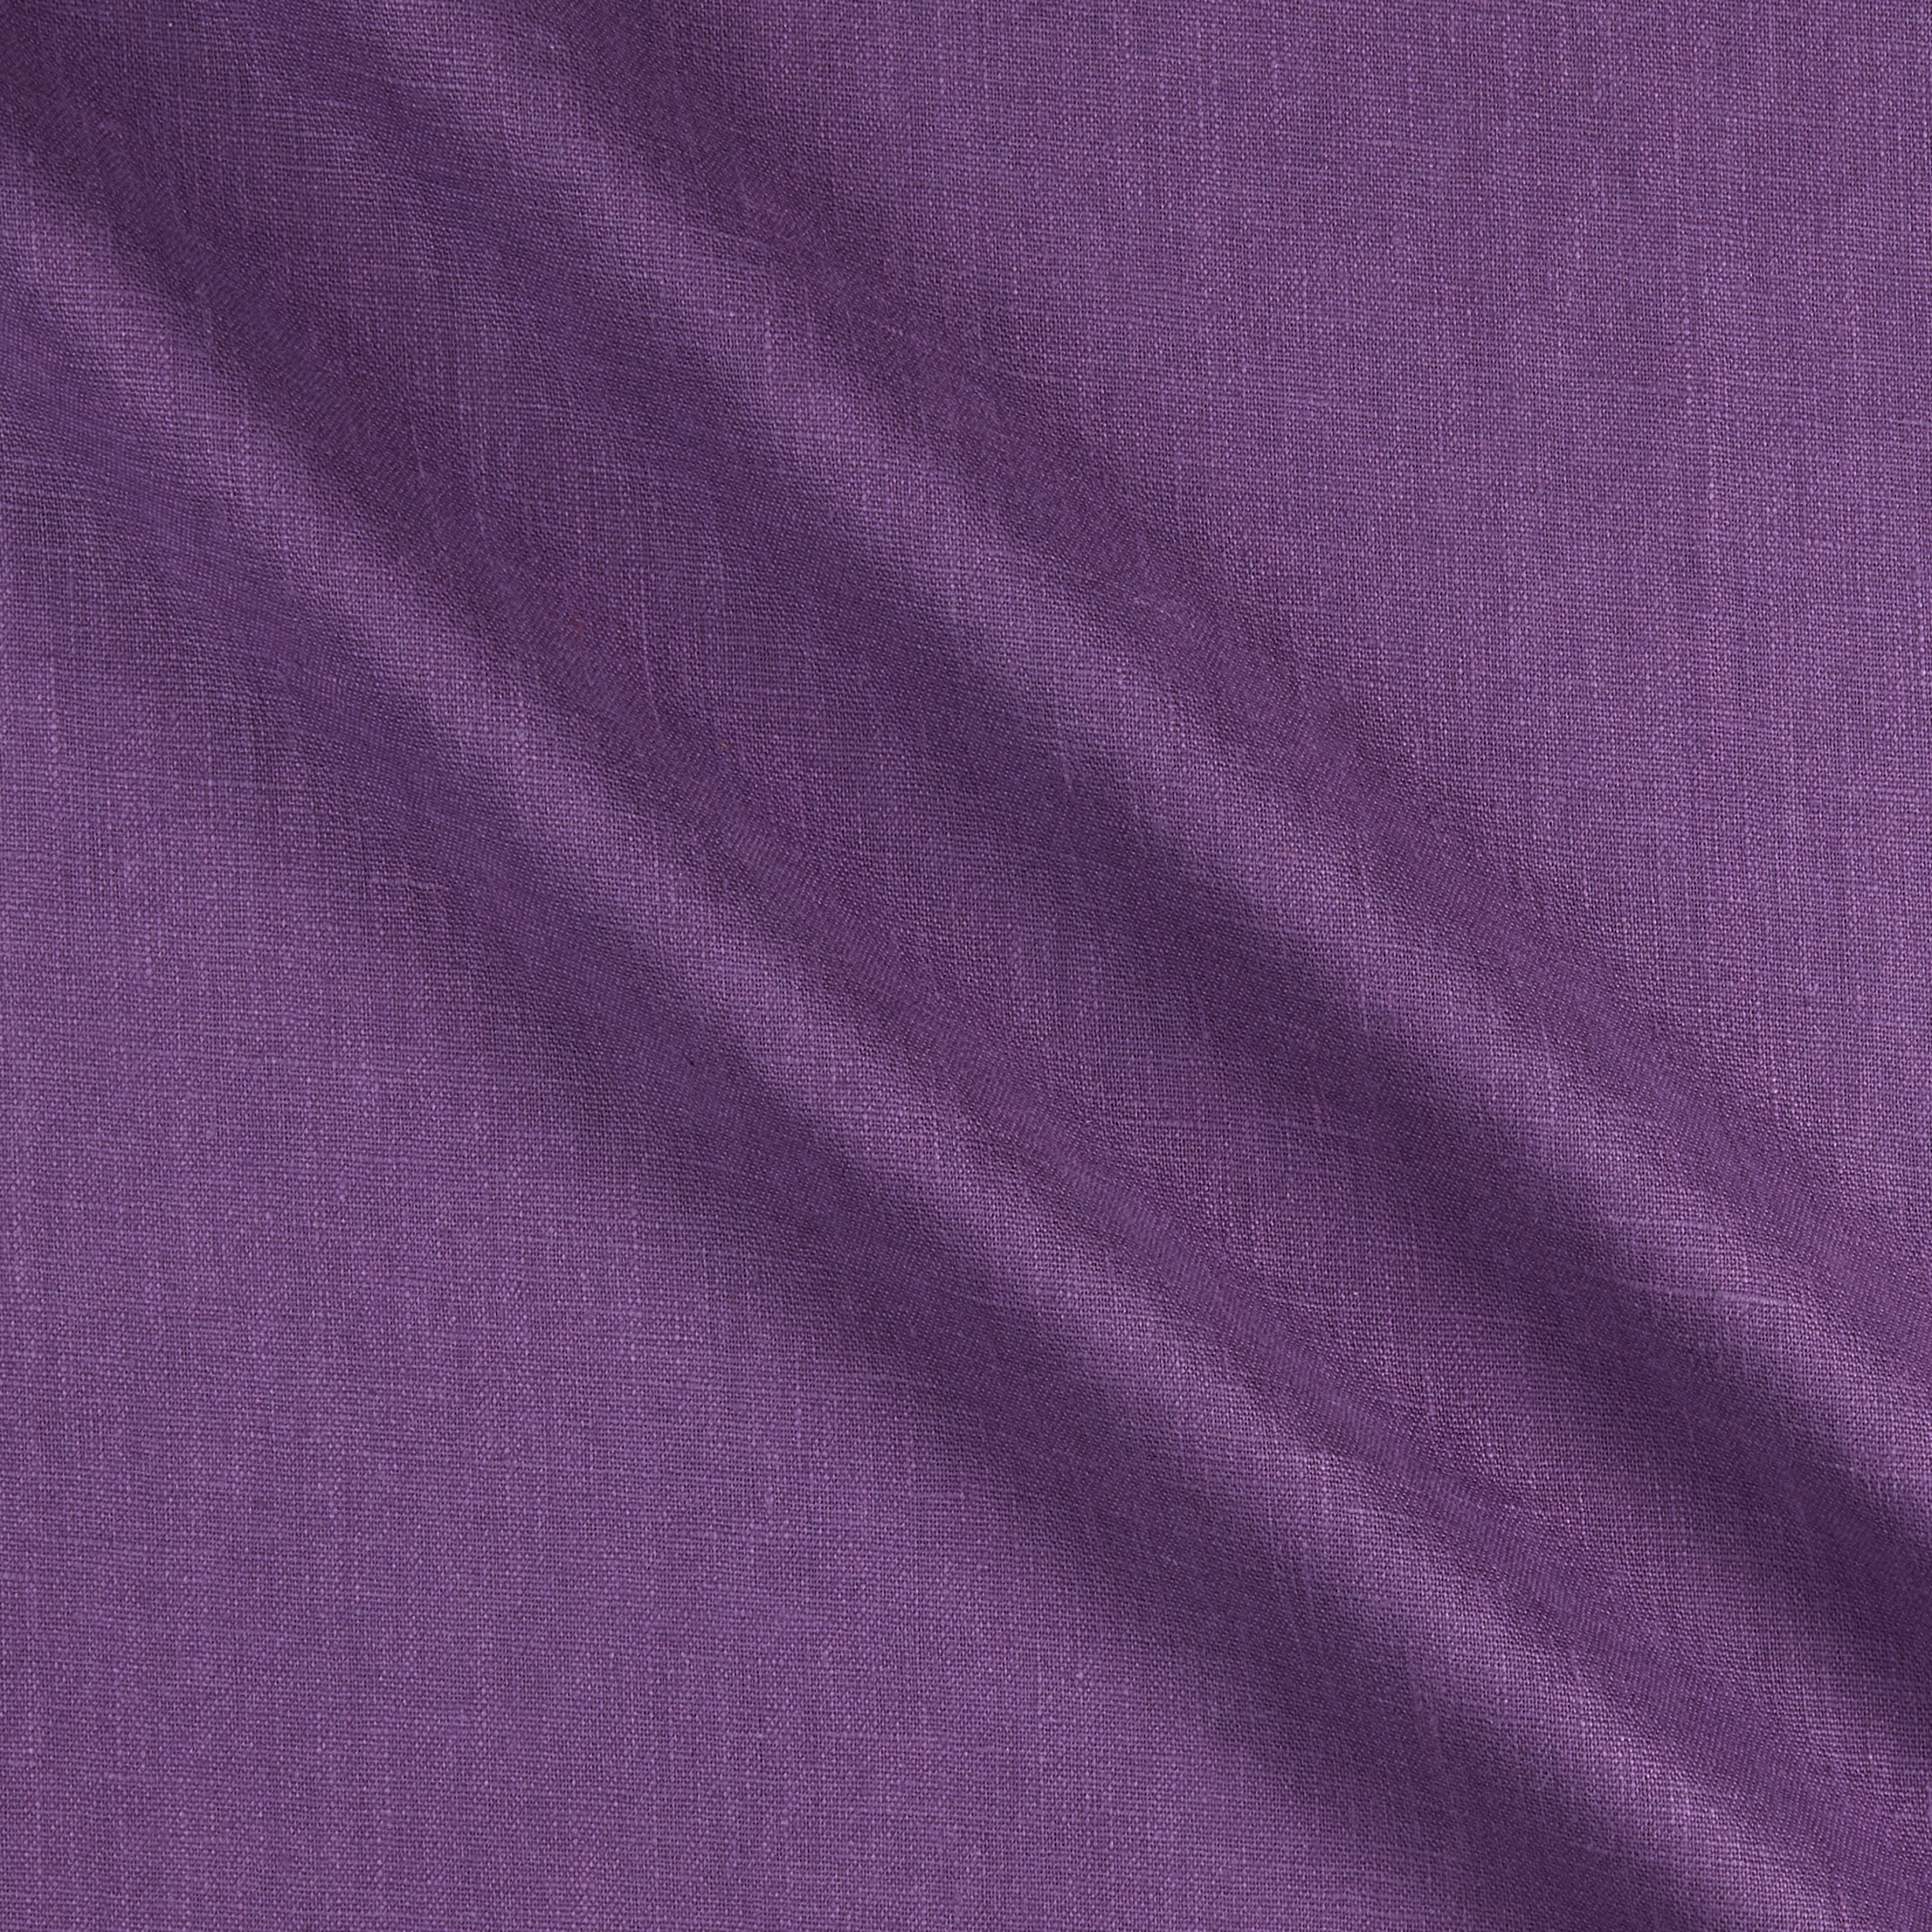 European 100% Laundered Linen Purple Fabric by Noveltex in USA